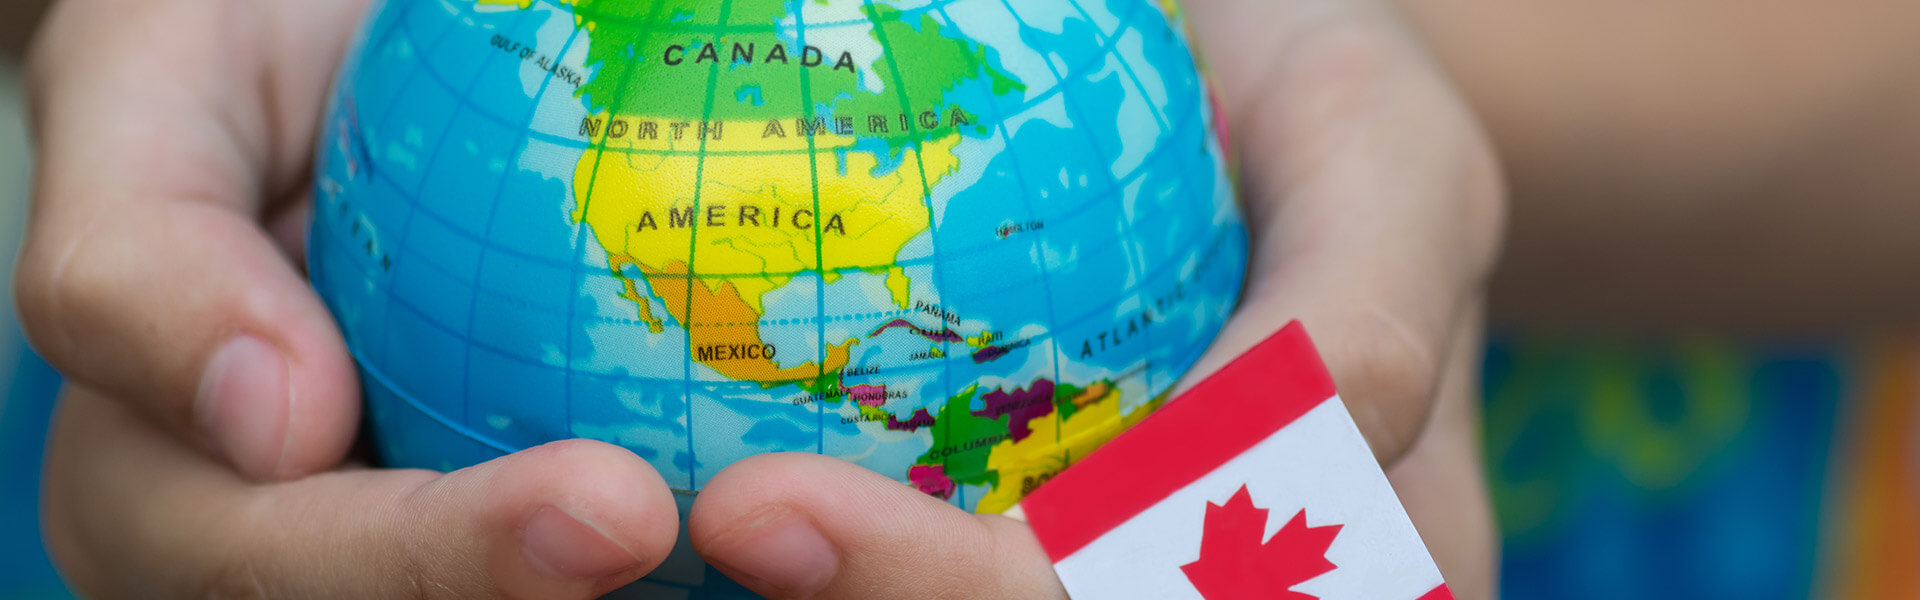 A globe showing North America being held in hands with a Canadian flag coming up from the right bottom corner of the image.